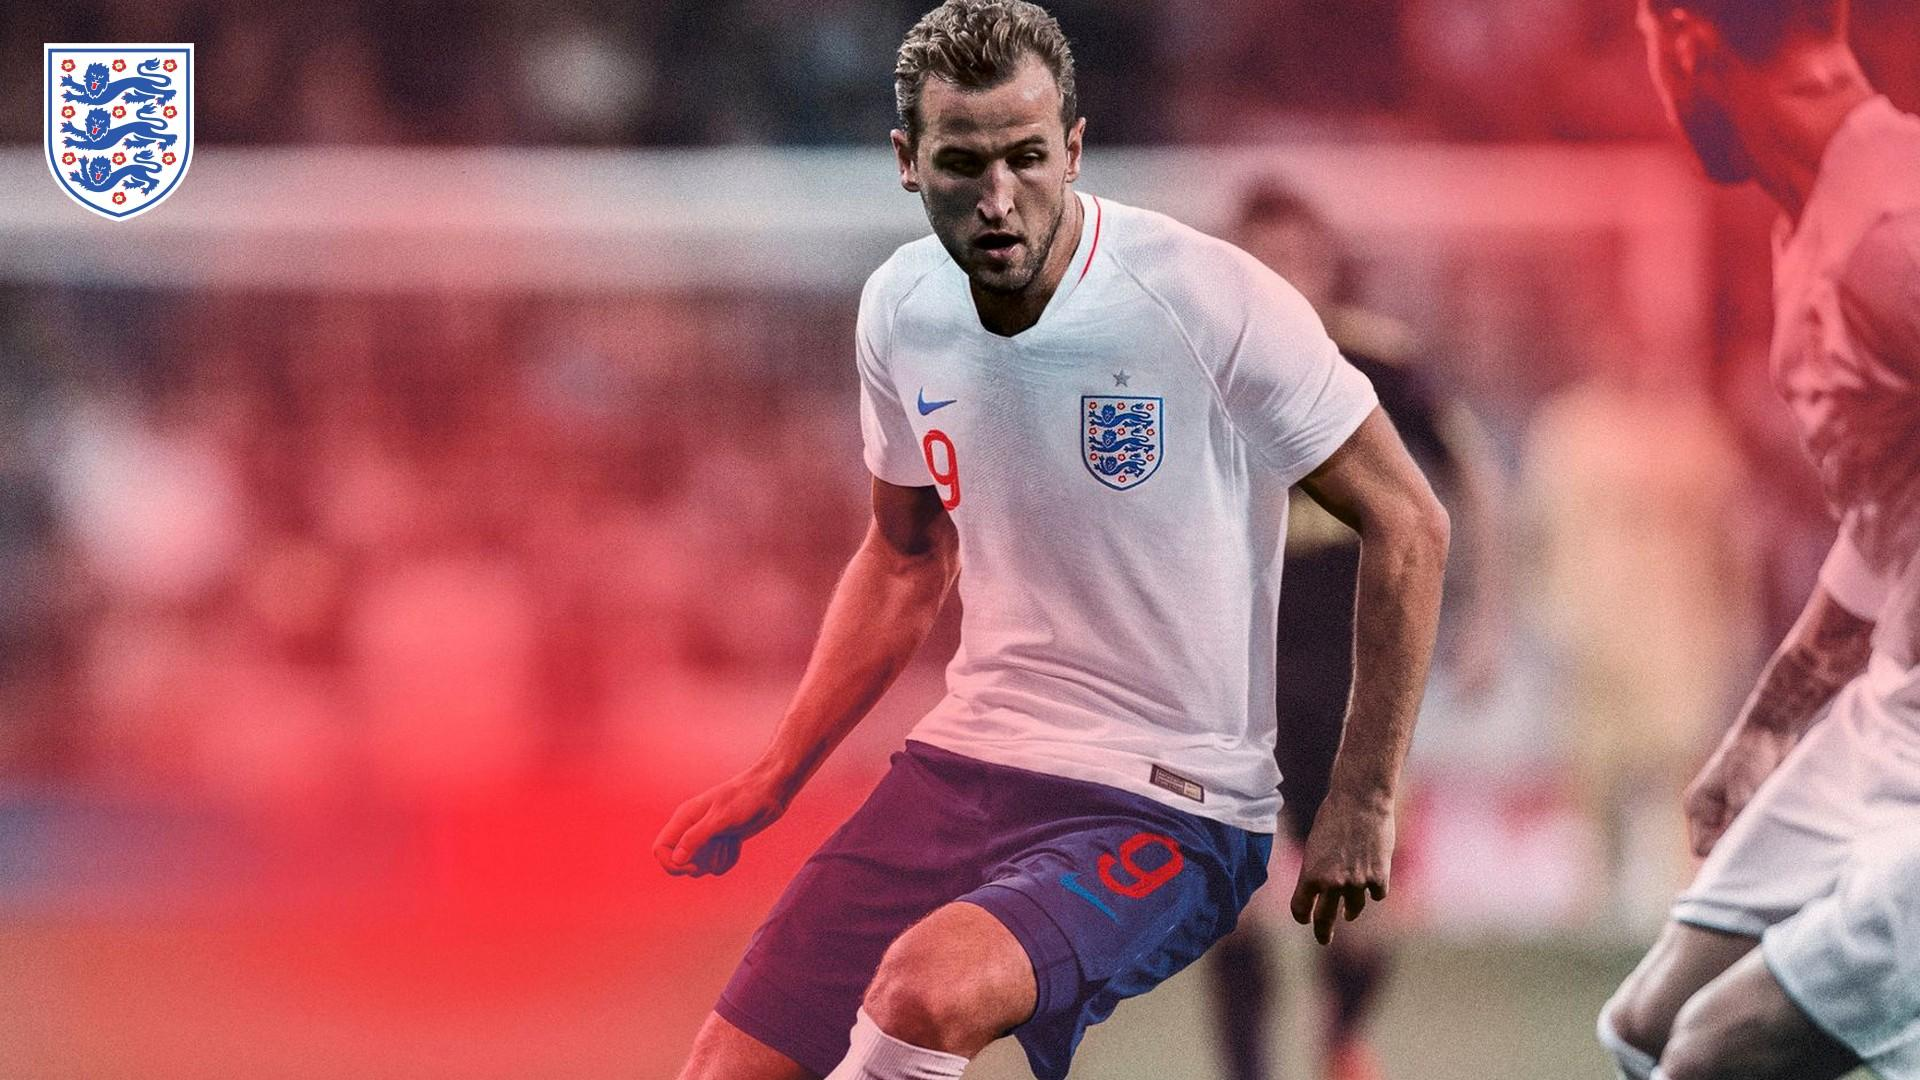 Harry Kane 2019 Wallpapers